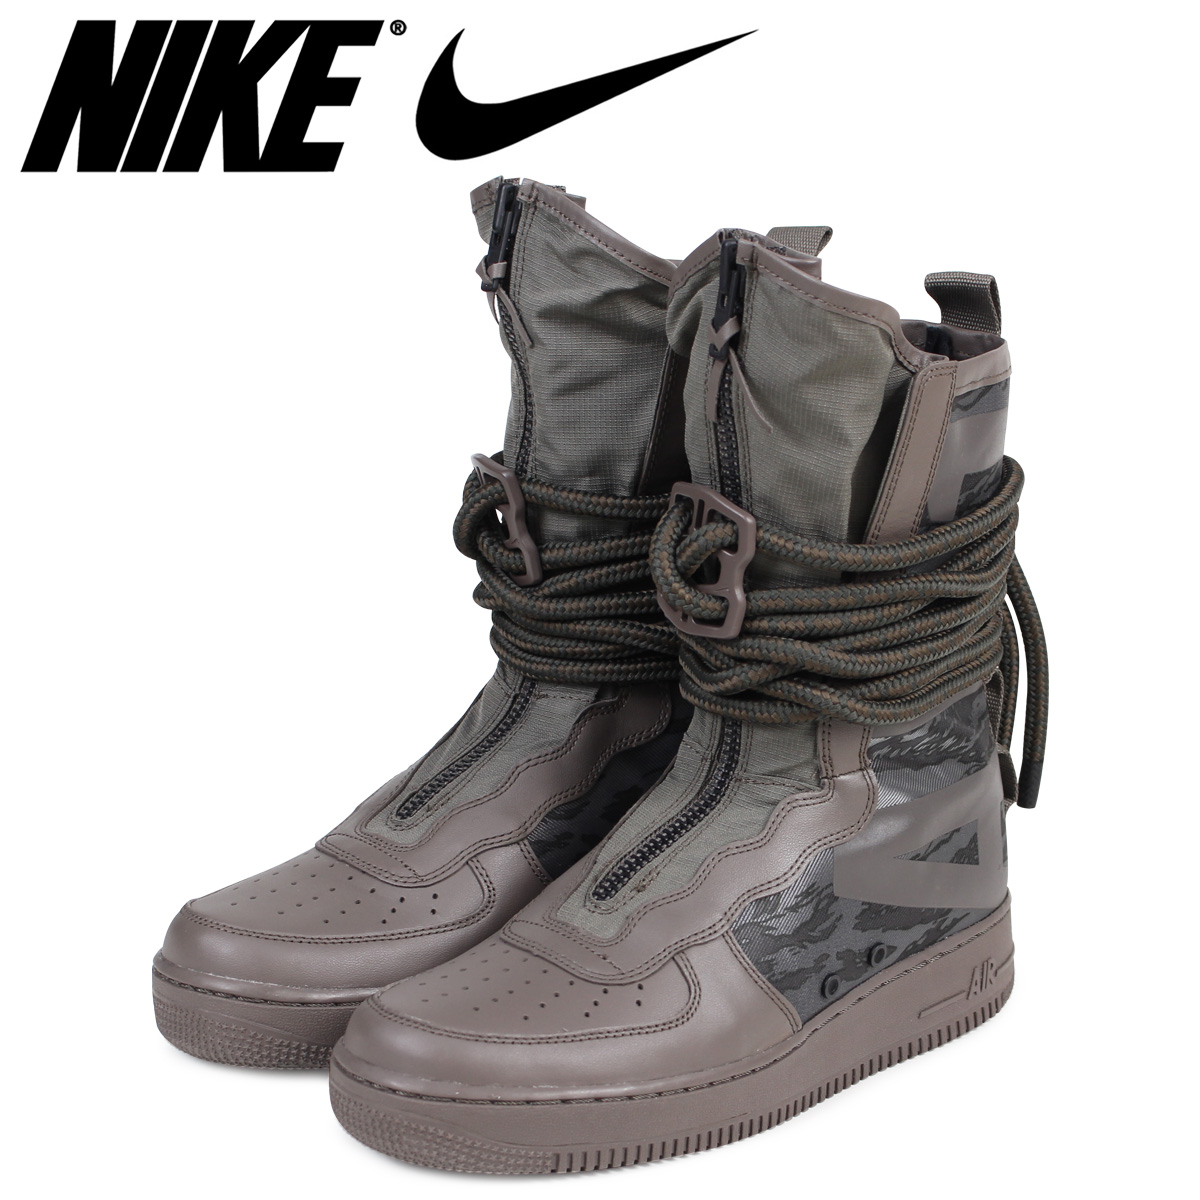 NIKE Nike air force 1 sneakers special field SPECIAL FIELD AIR FORCE 1  AA1128-203 SF AF1 men brown  load planned Shinnyu load in reservation  product 1 20 ... d47253cdc8